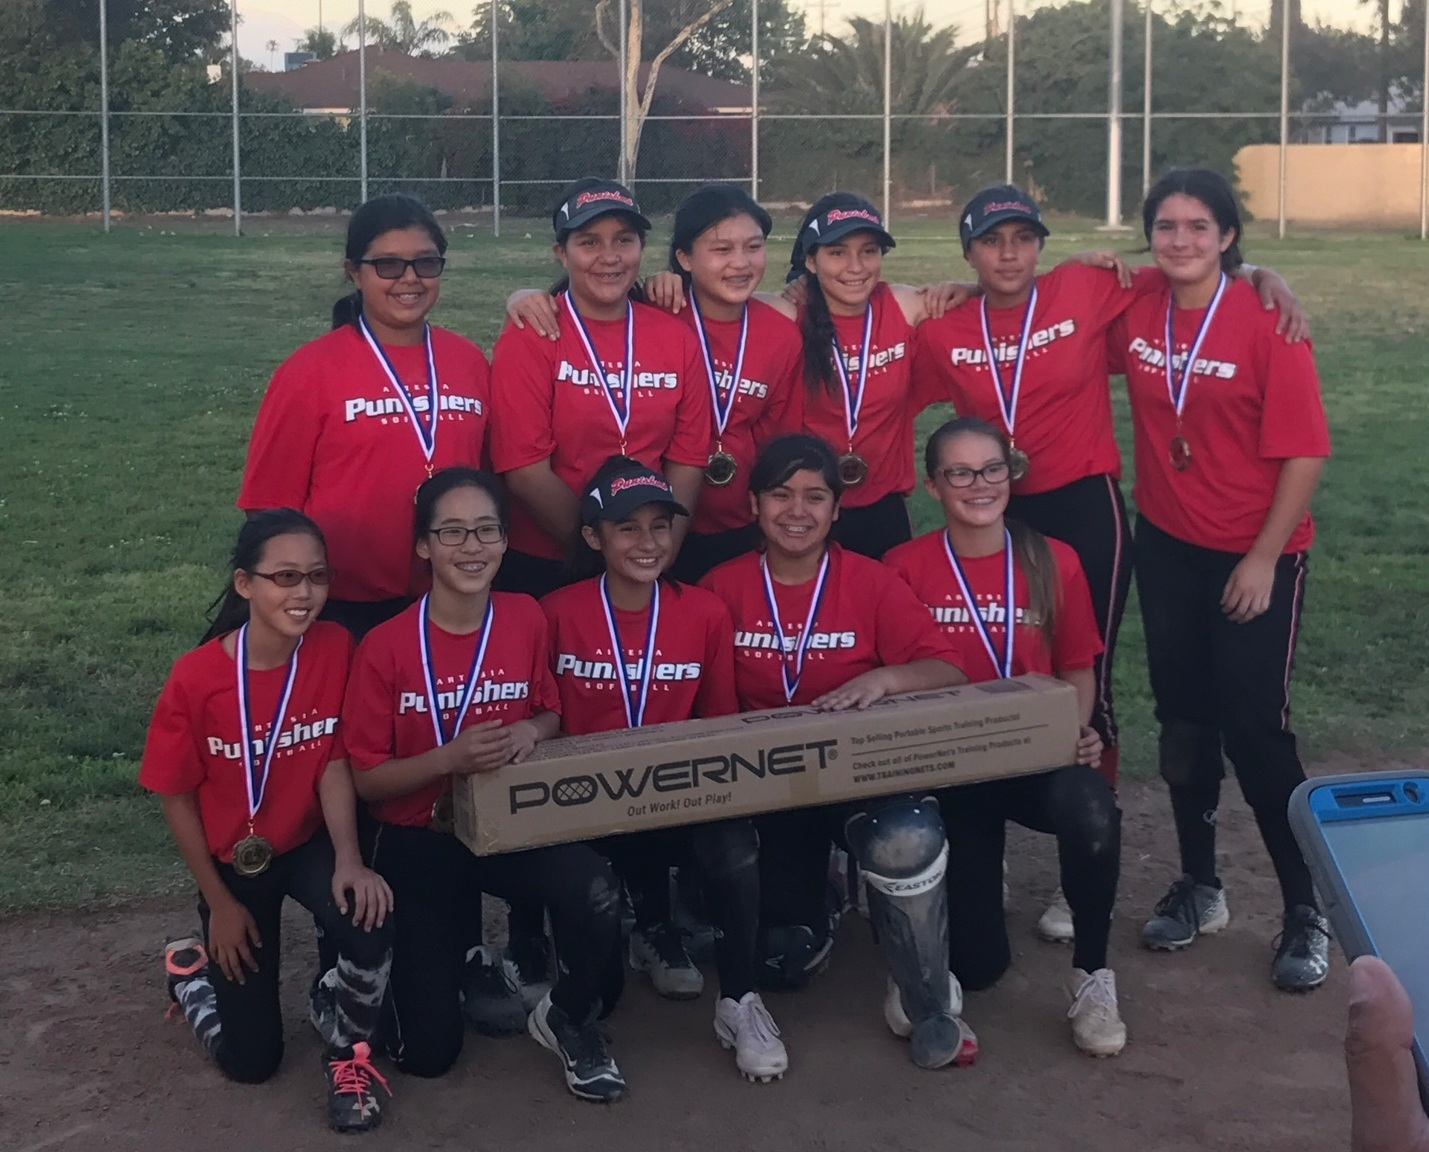 1st Place - Artesia Punishers